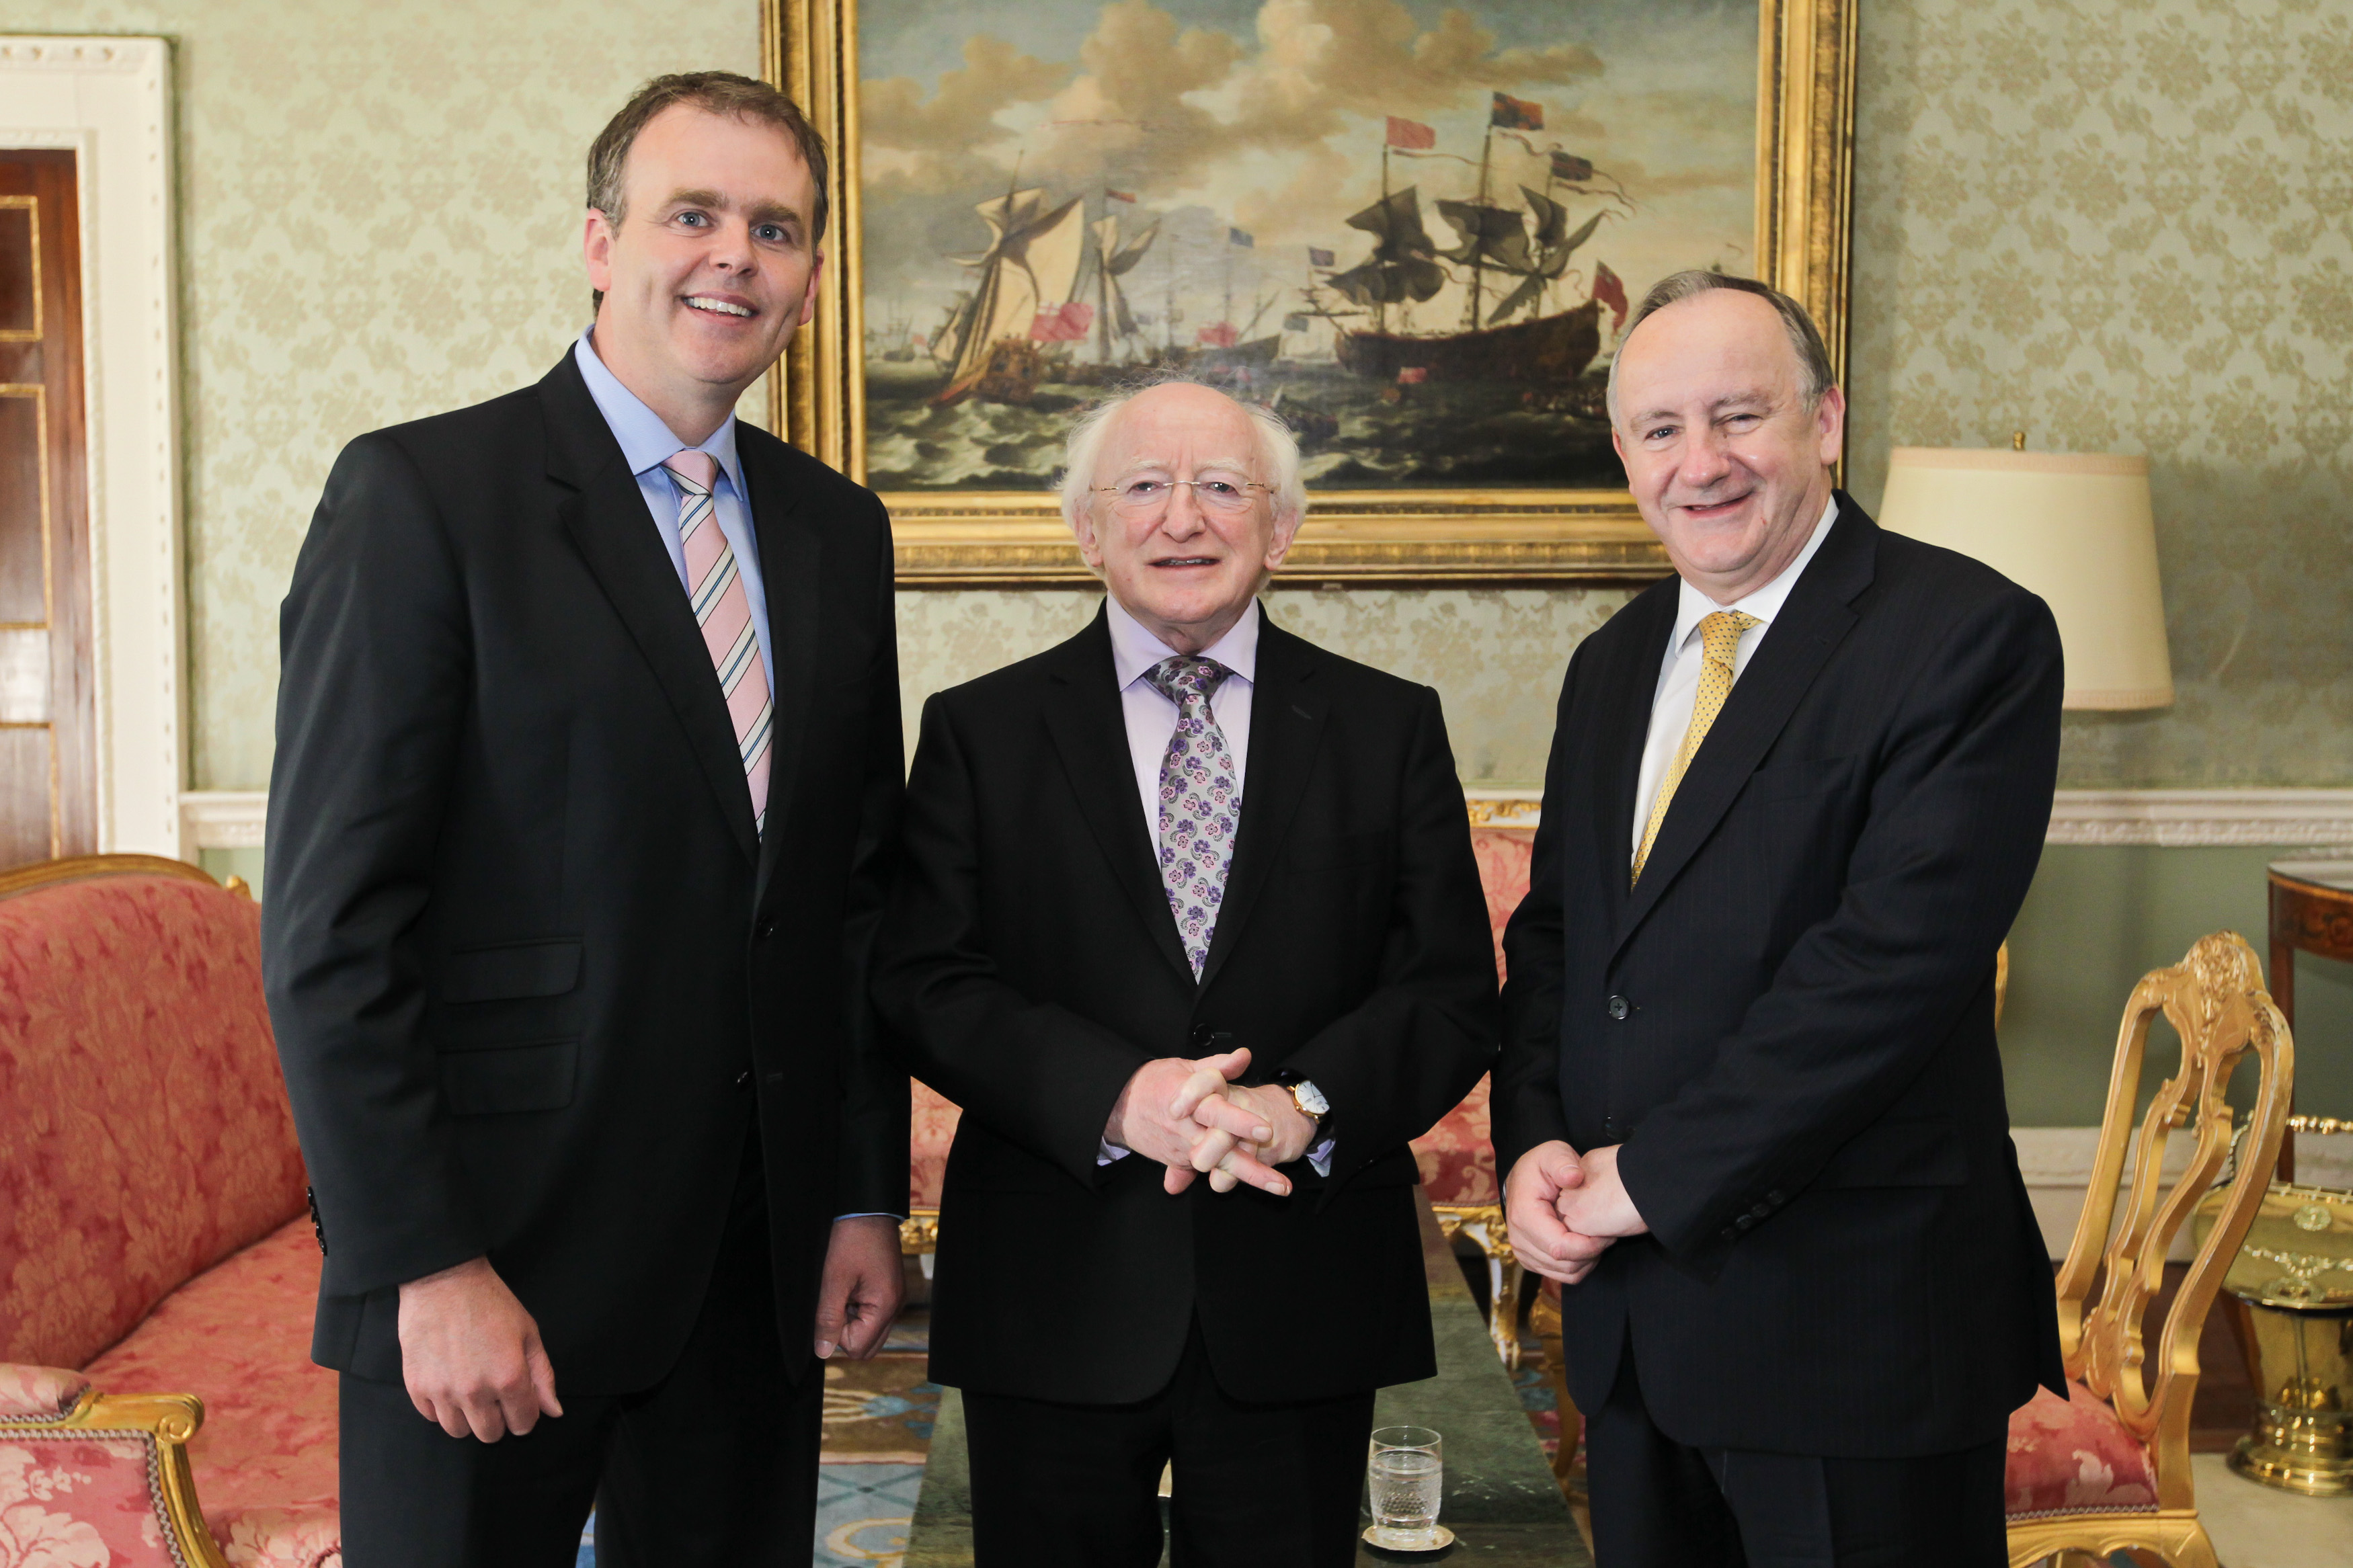 President of Ireland, Michael D Higgins, with BIPA Co-Chairs, Joe McHugh TD and Laurence Robertson MP, at a reception in Aras an Uchtarain to mark the 44th plenary